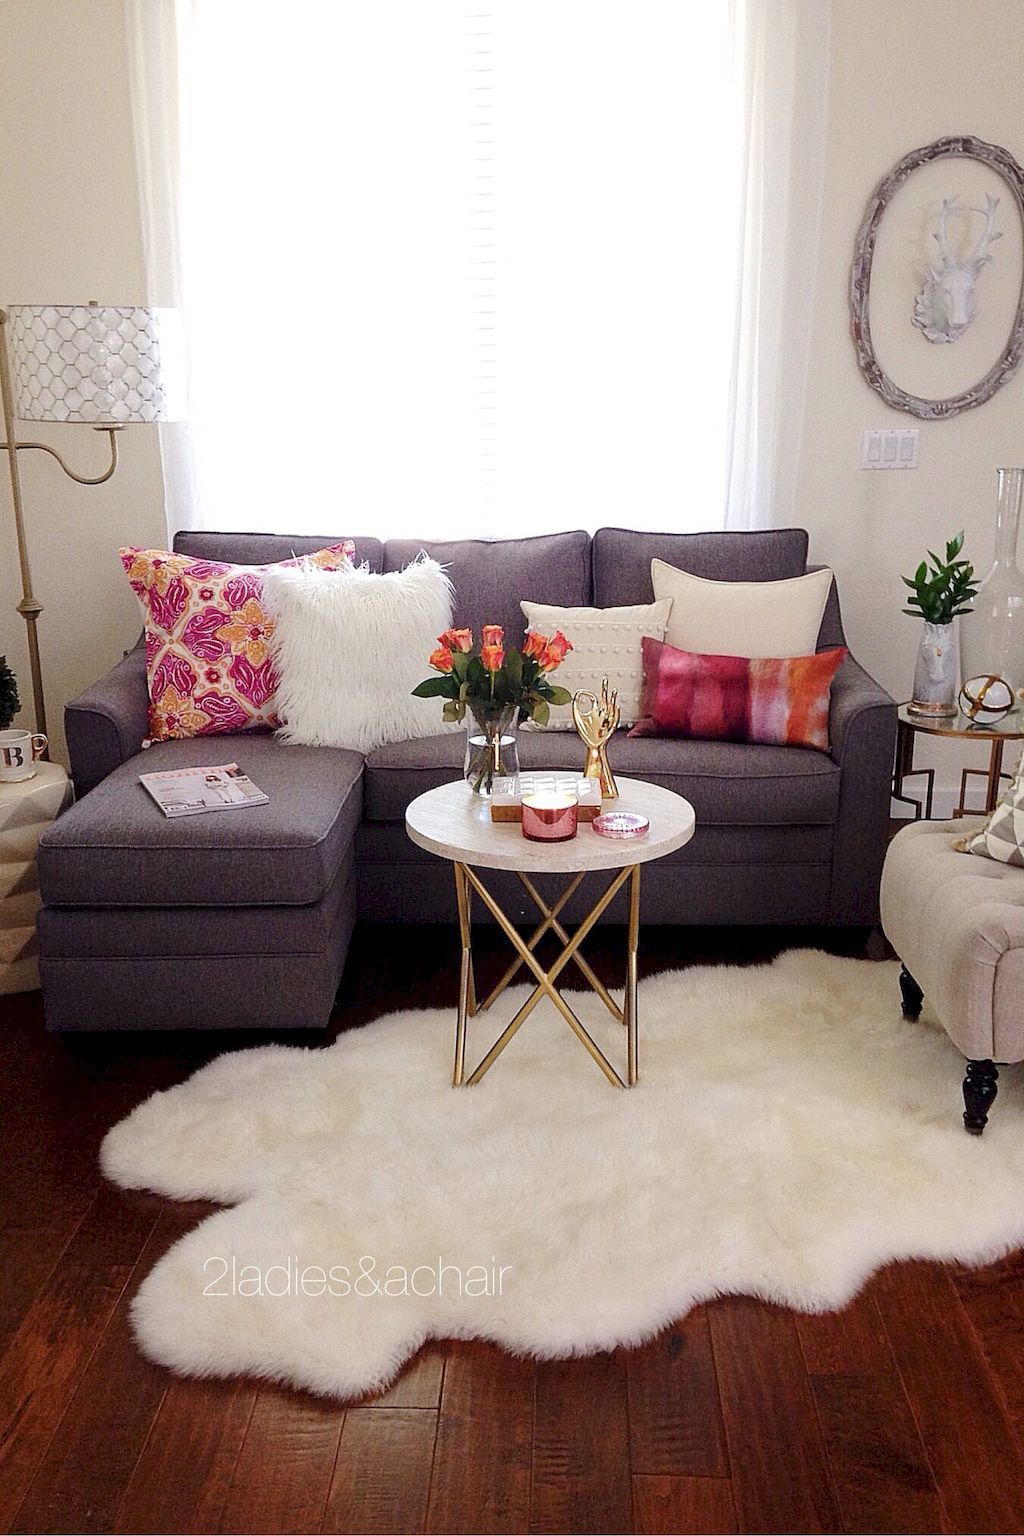 28 Cheap And Easy First Apartment Decorating Ideas On A Budget